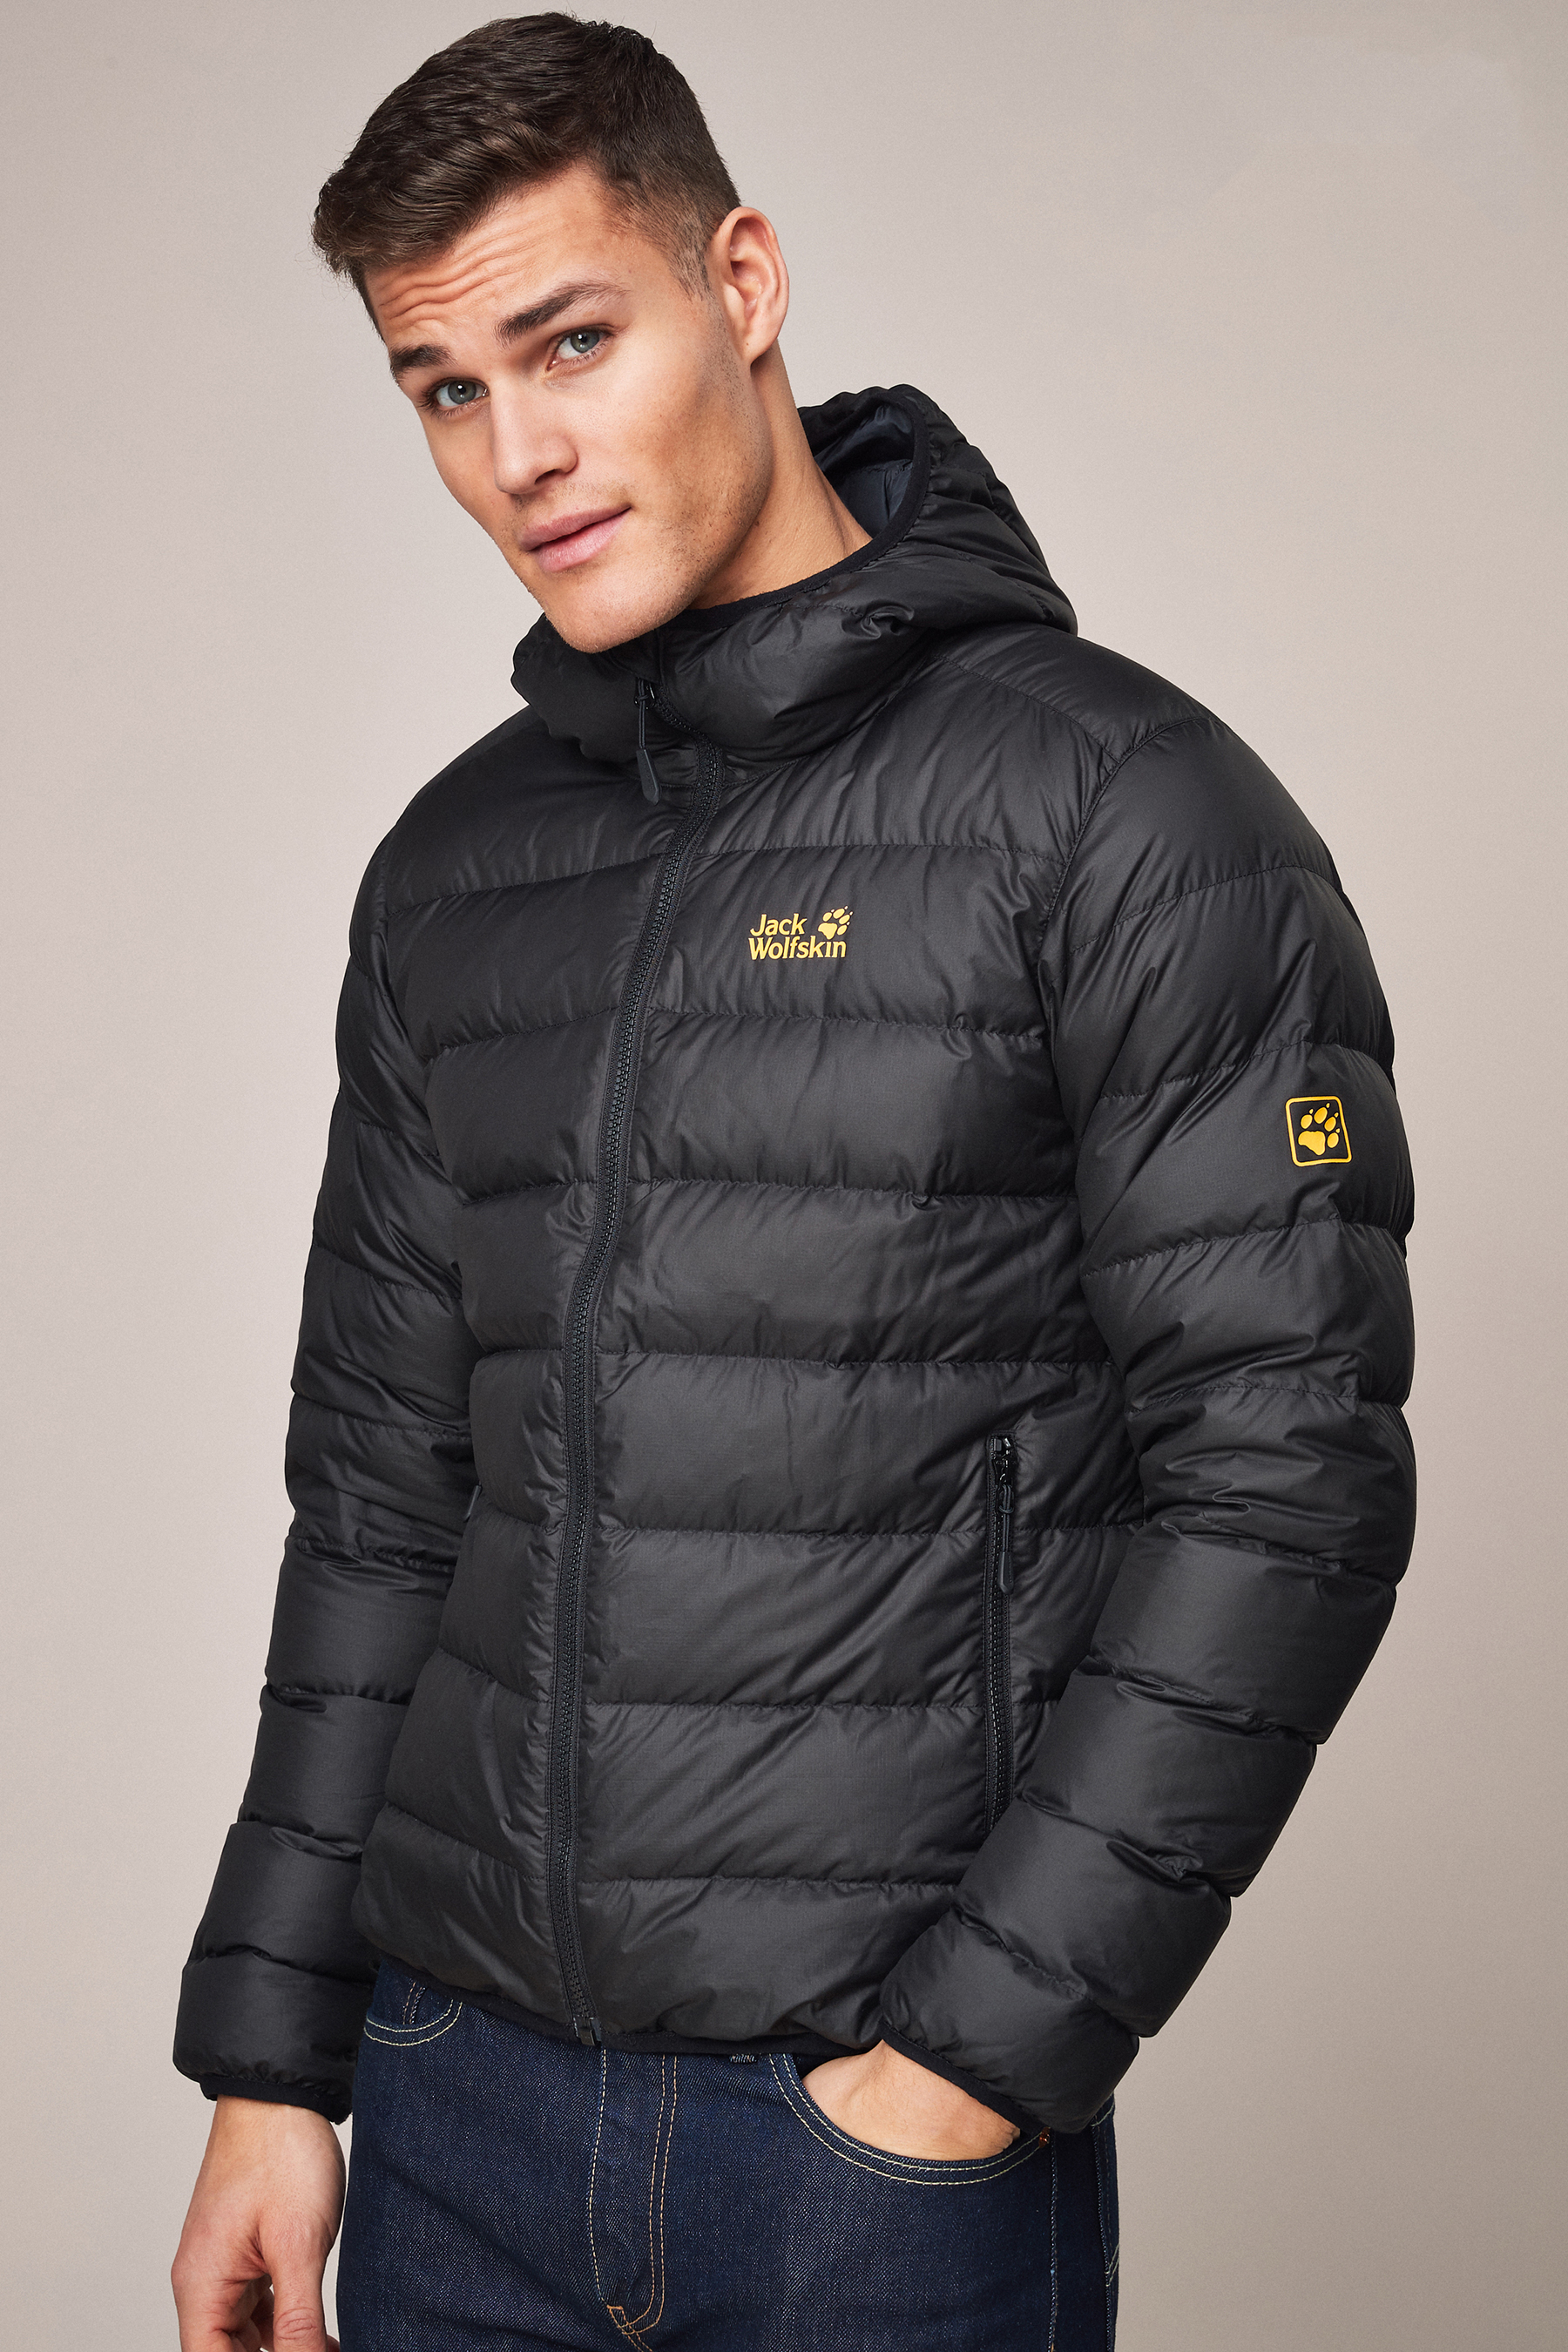 Jack Wolfskin Black Fashion for Men ShopStyle UK